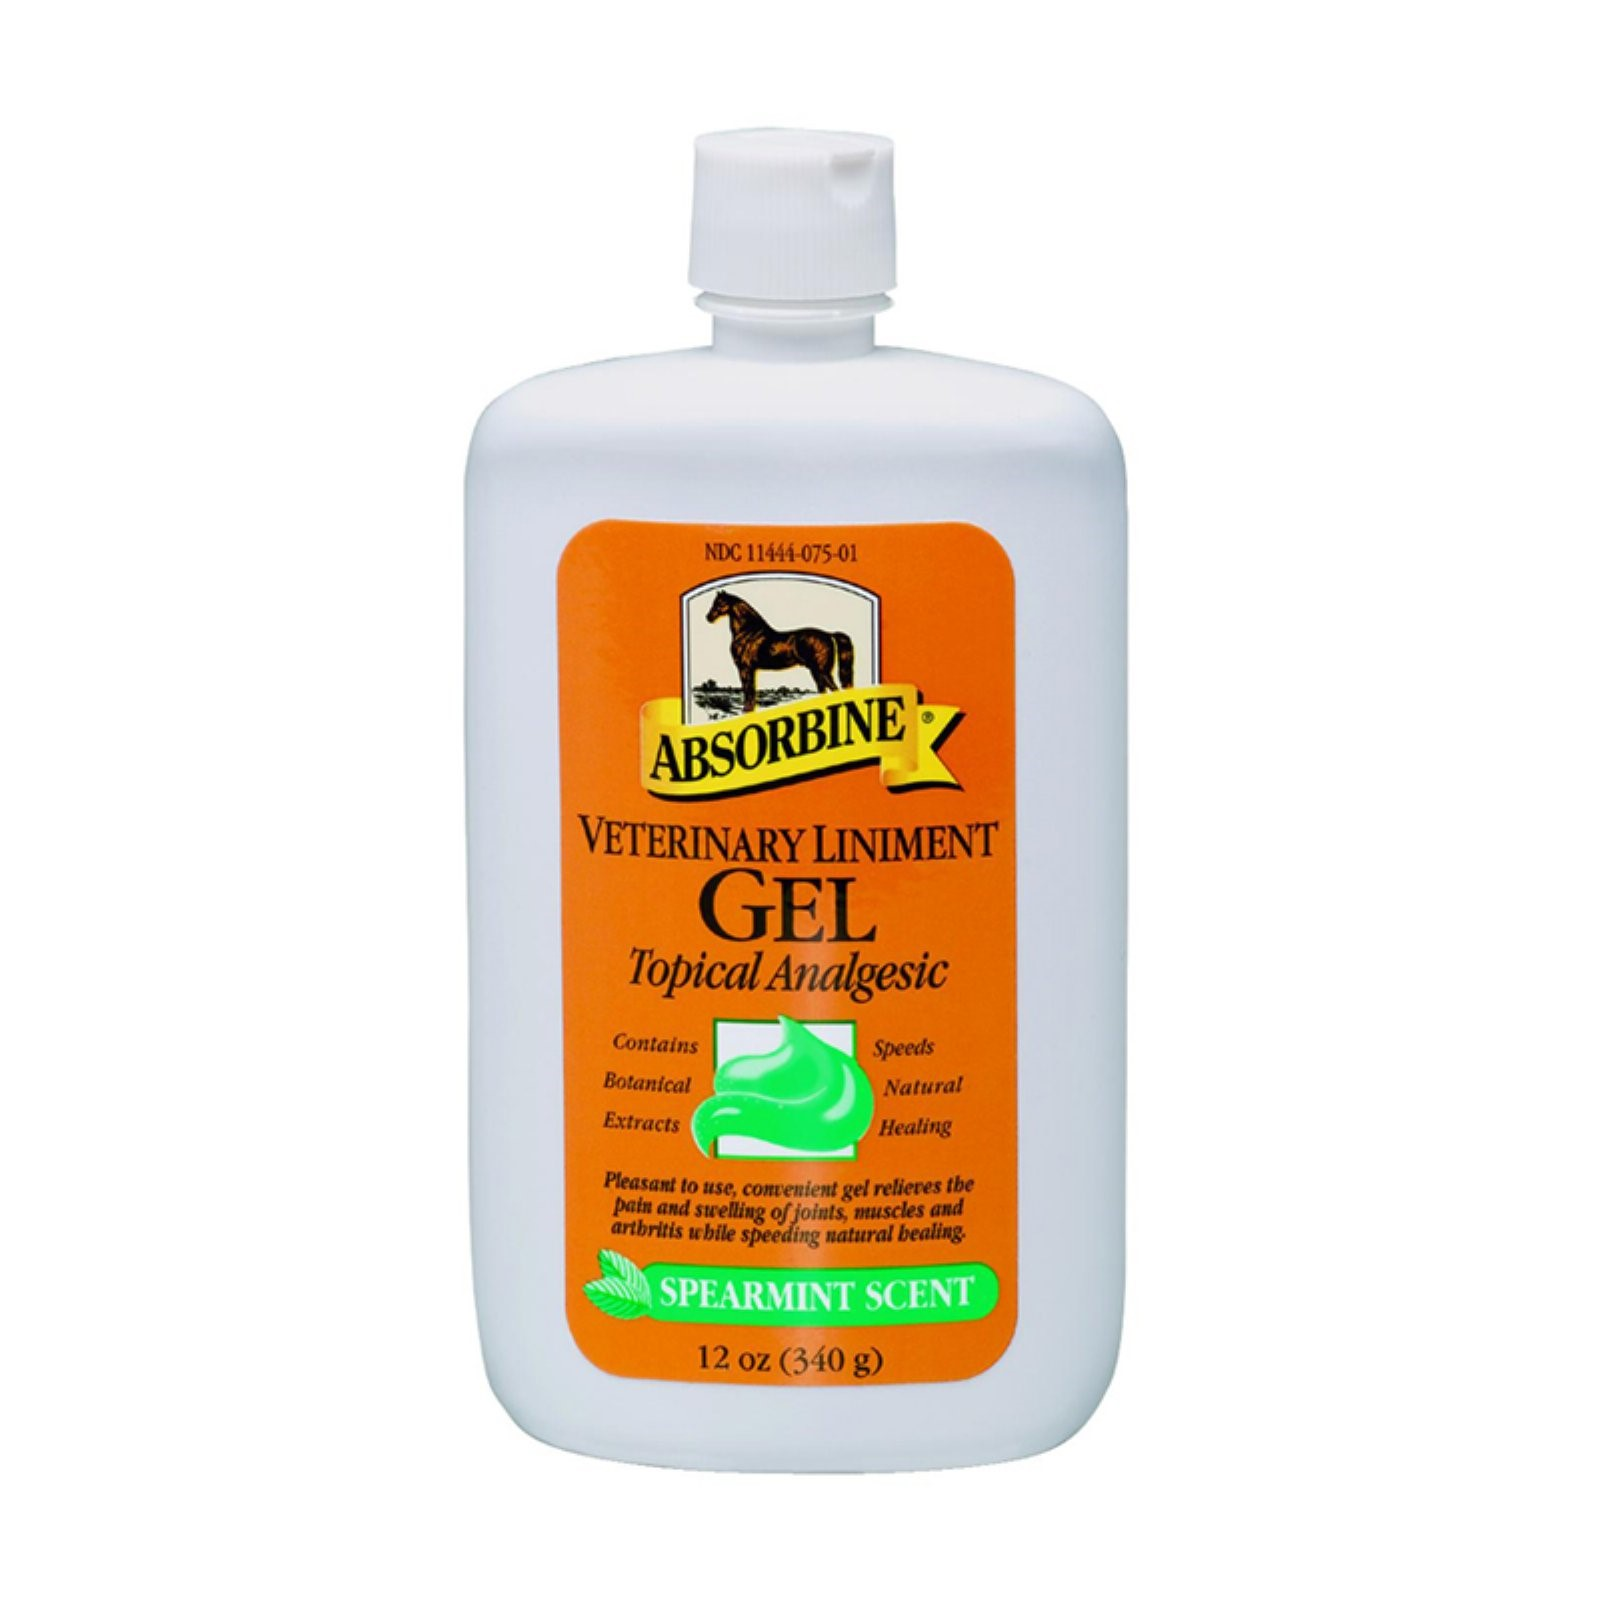 W F Young Absorbine Veterinary Liniment Gel